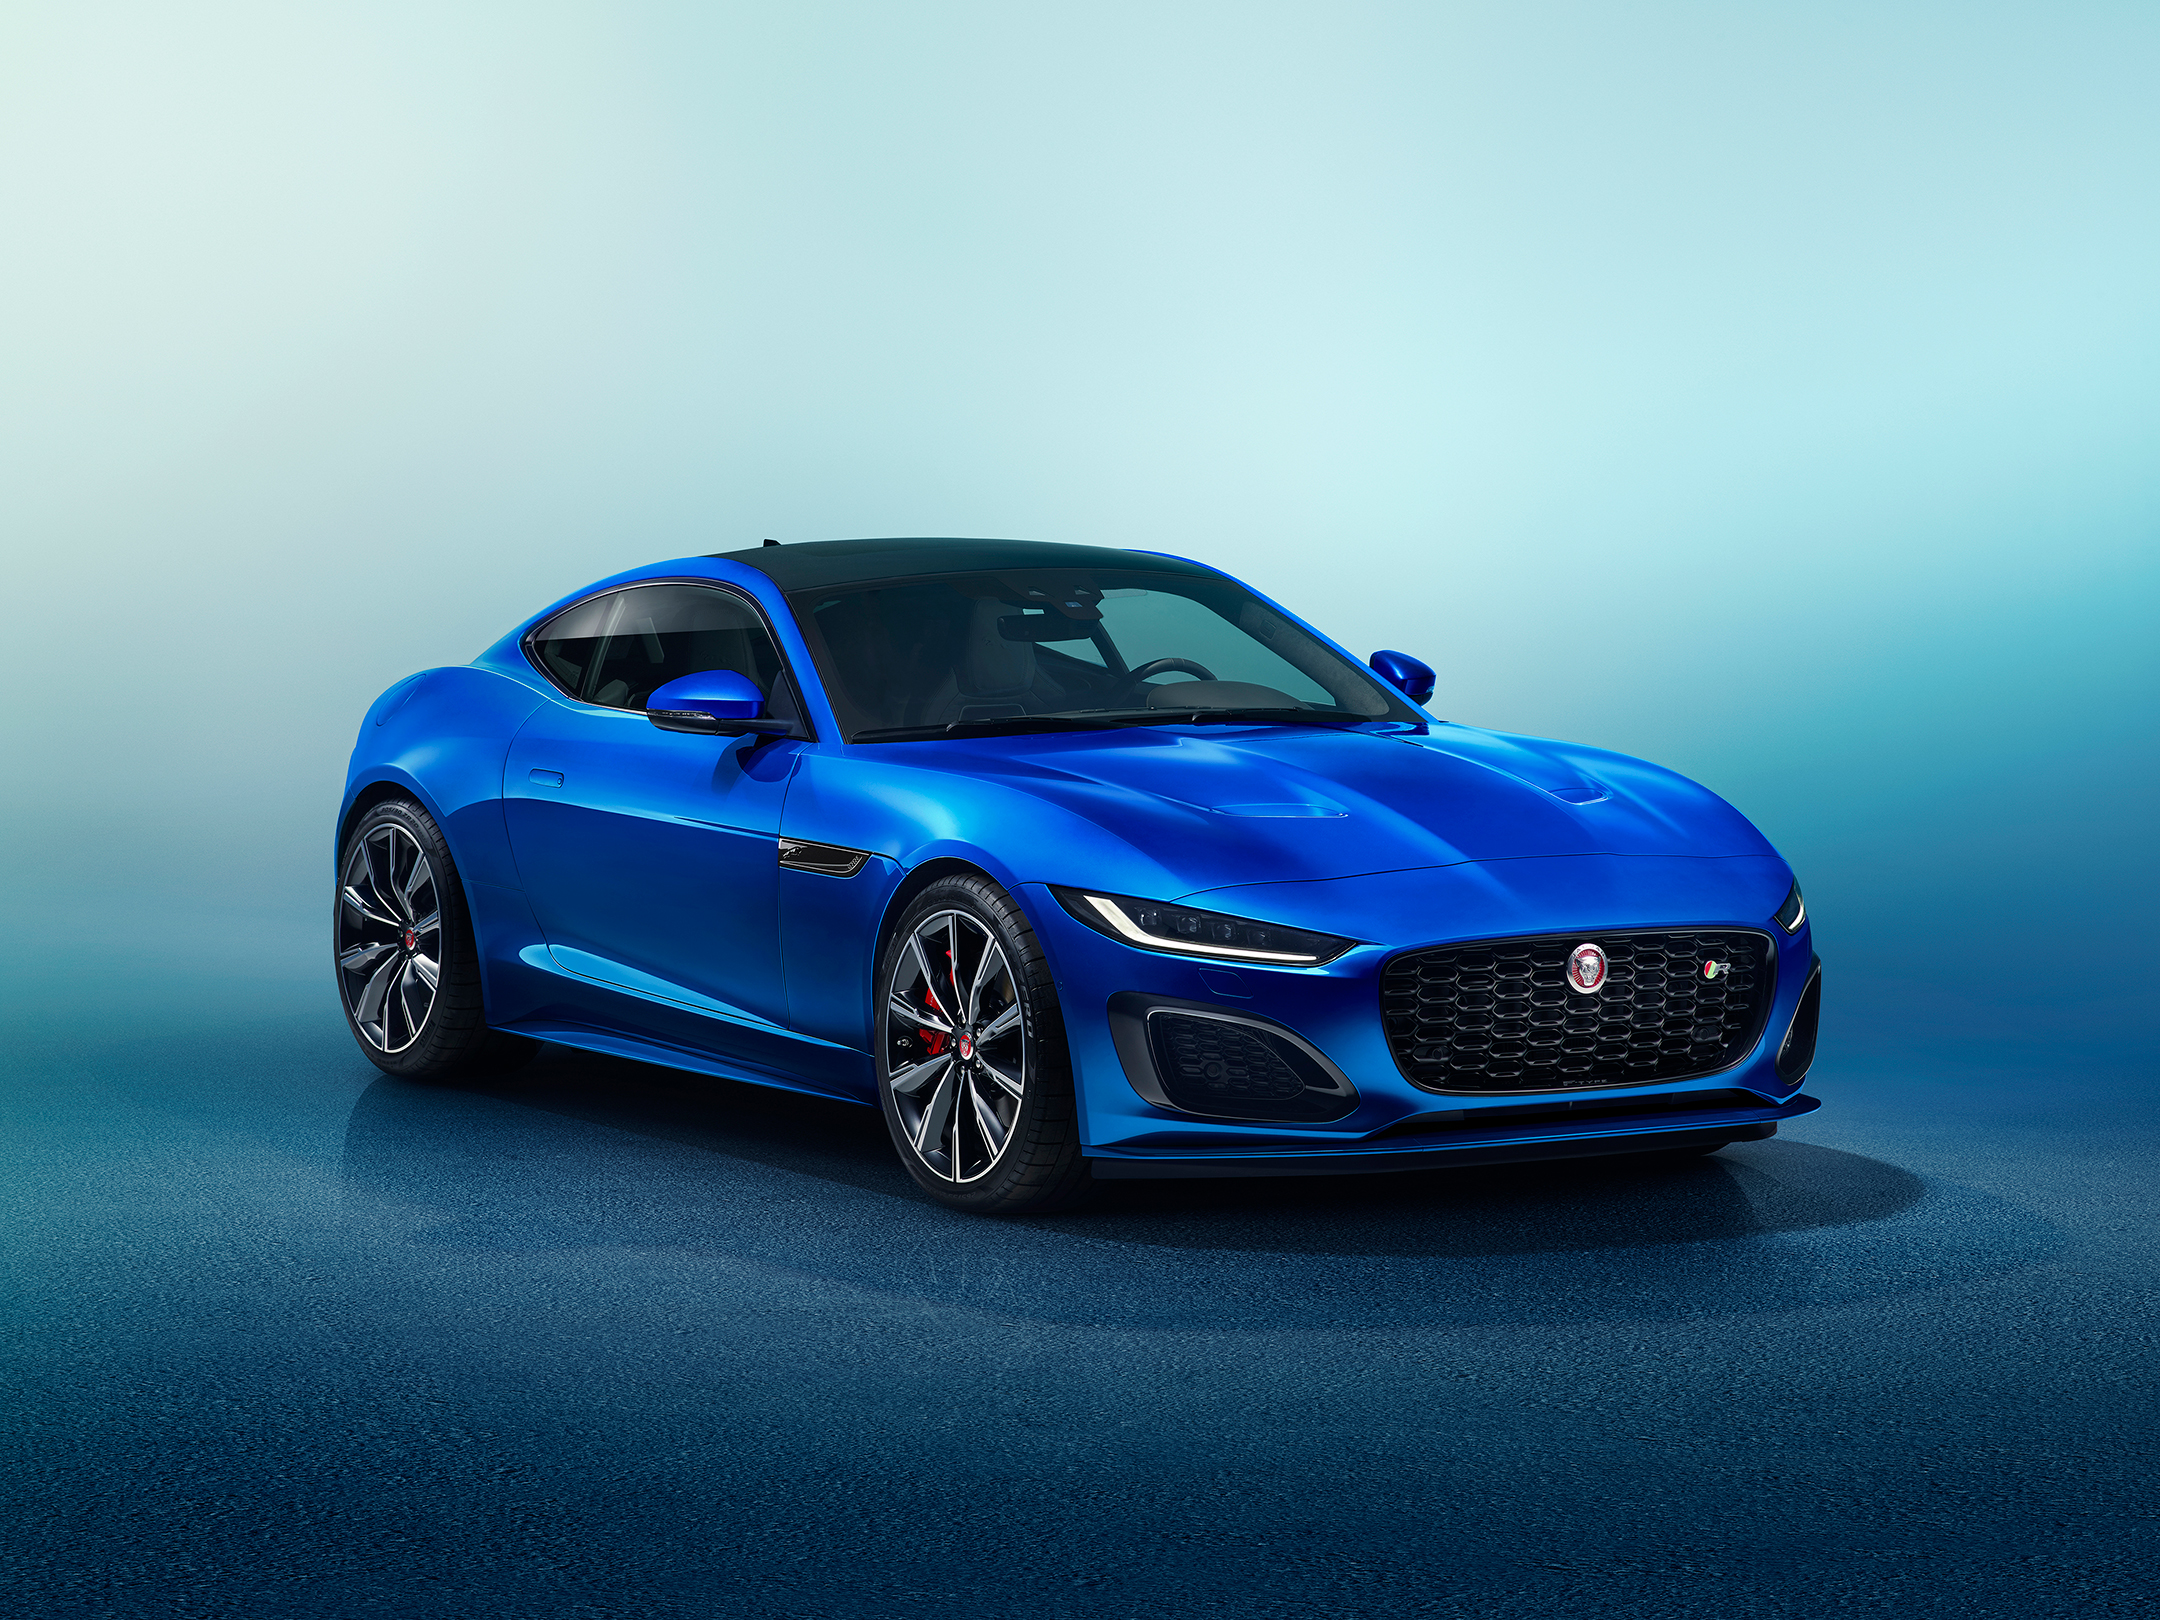 Jaguar F-TYPE - 2019 - front side-face / profil avant